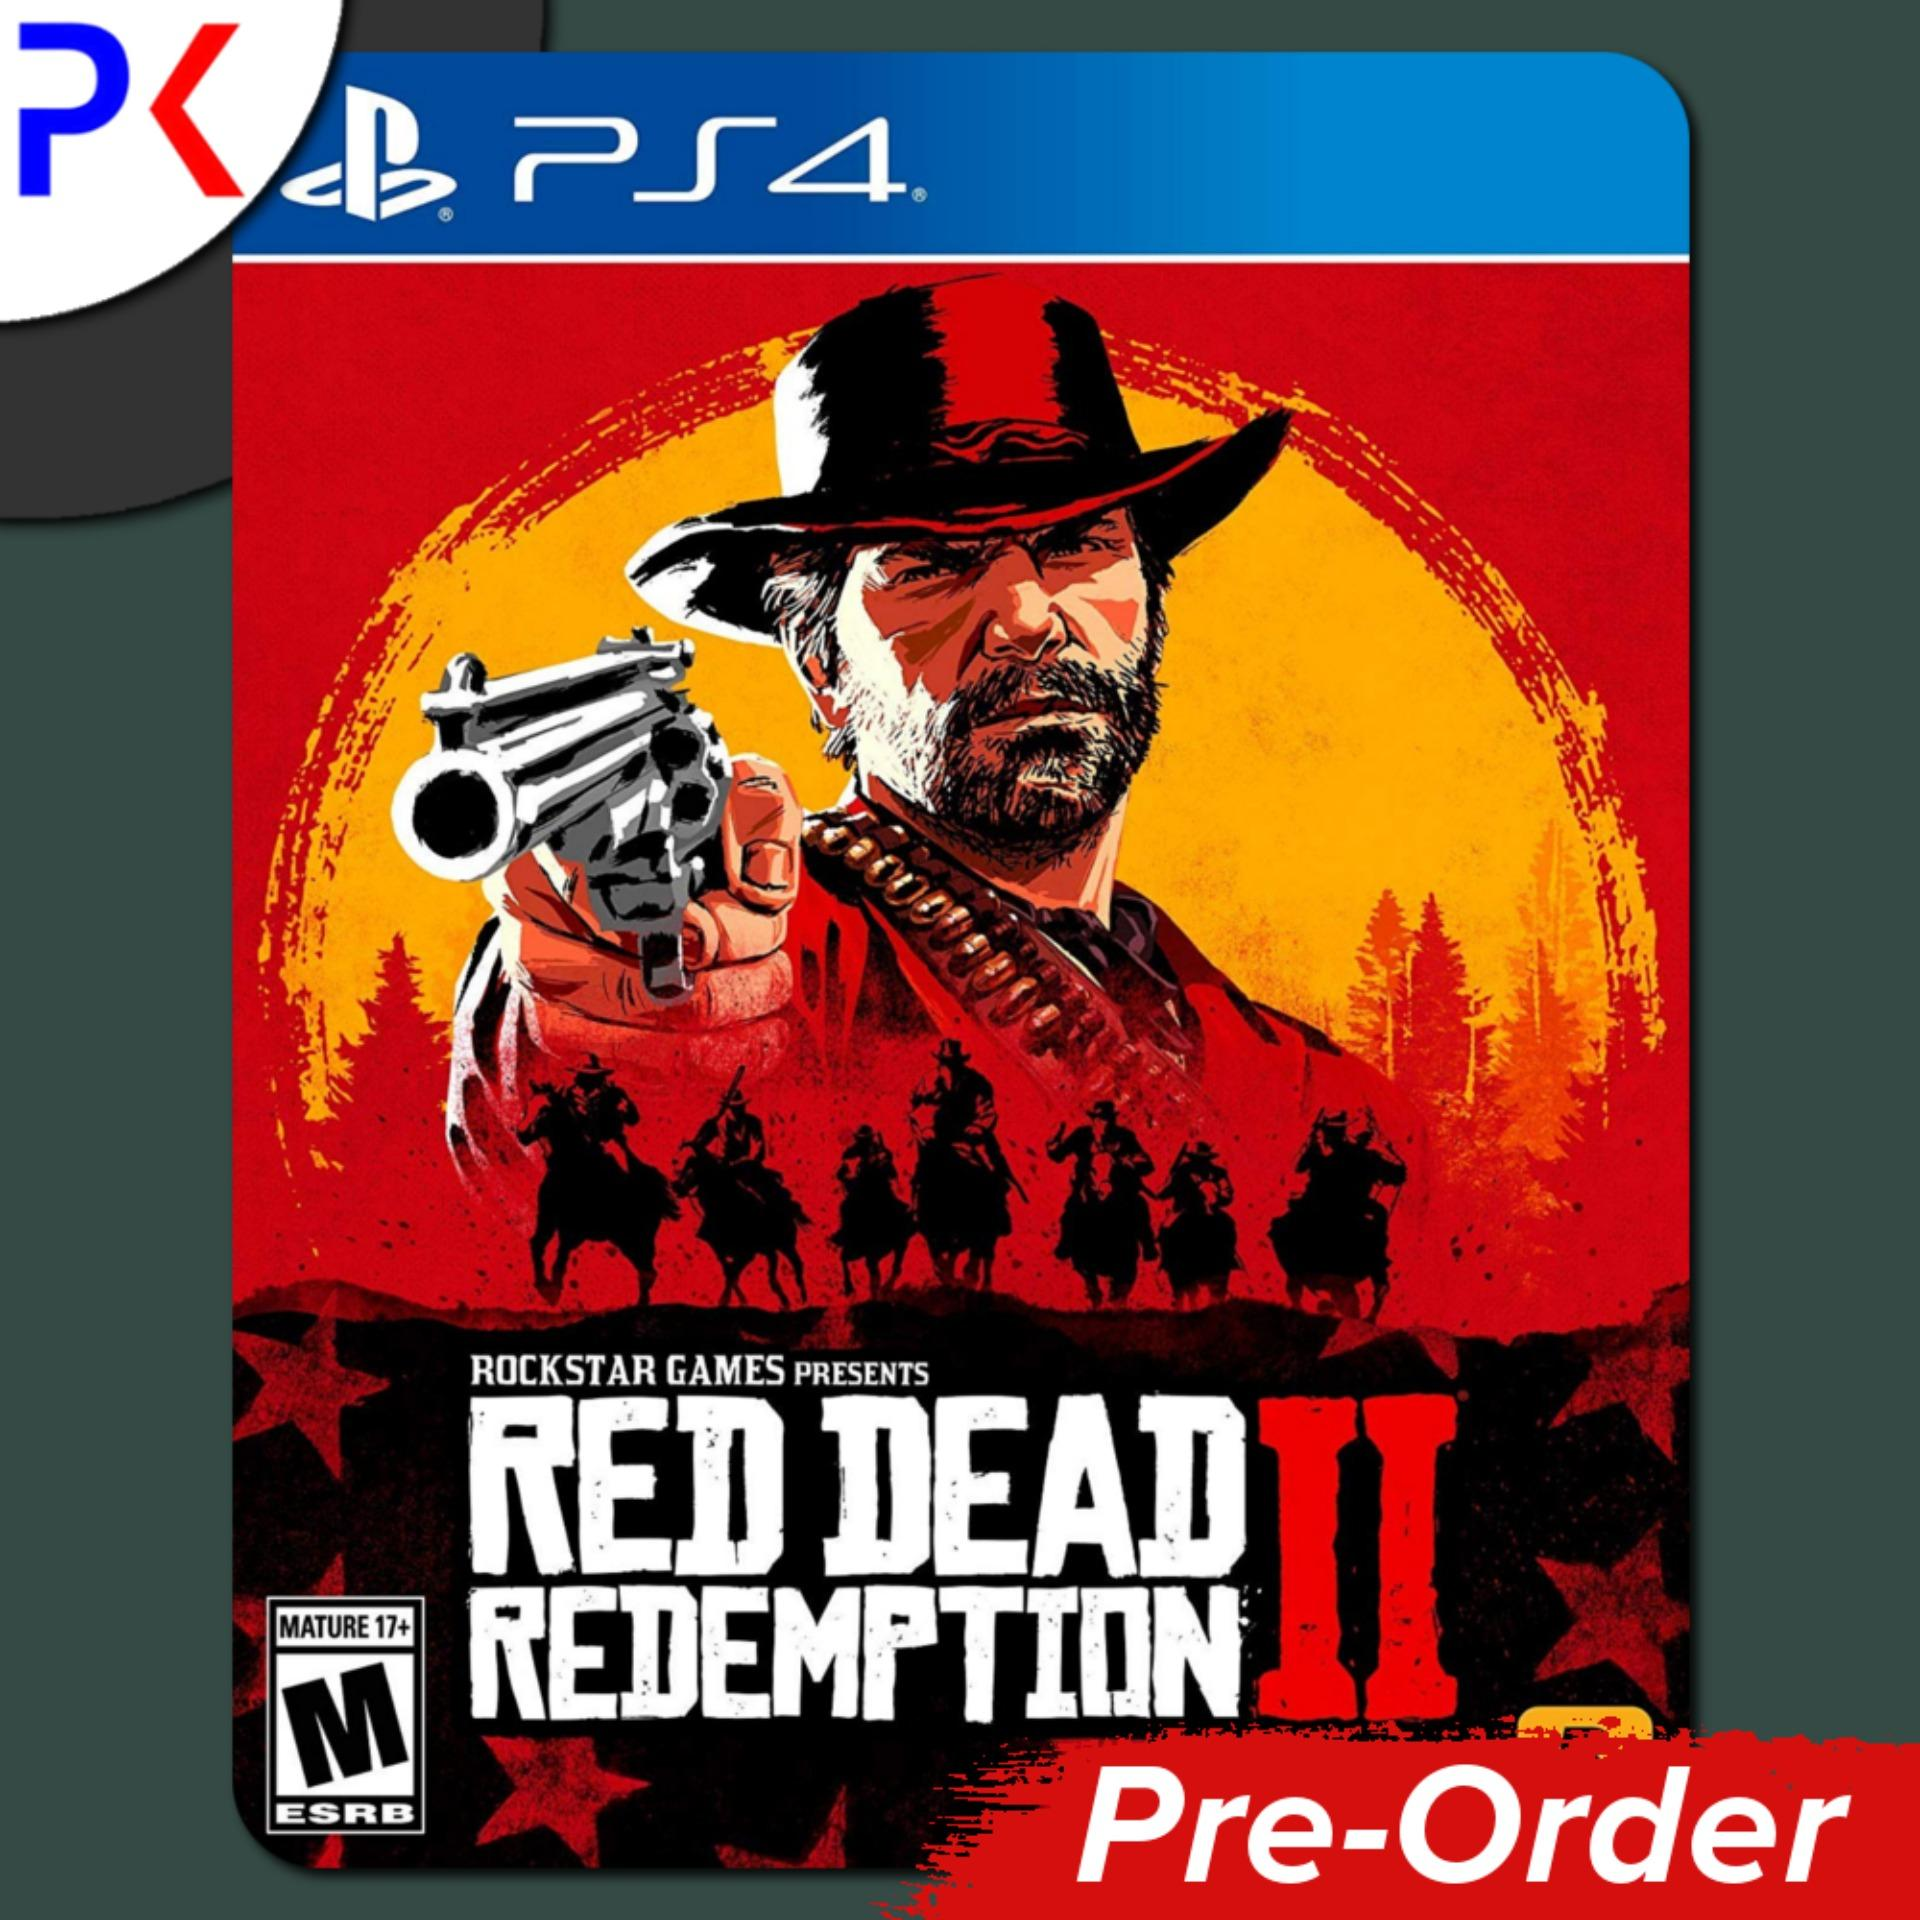 [Pre-Order] PS4 Red Dead Redemption 2 (Ships Earliest 26 October)